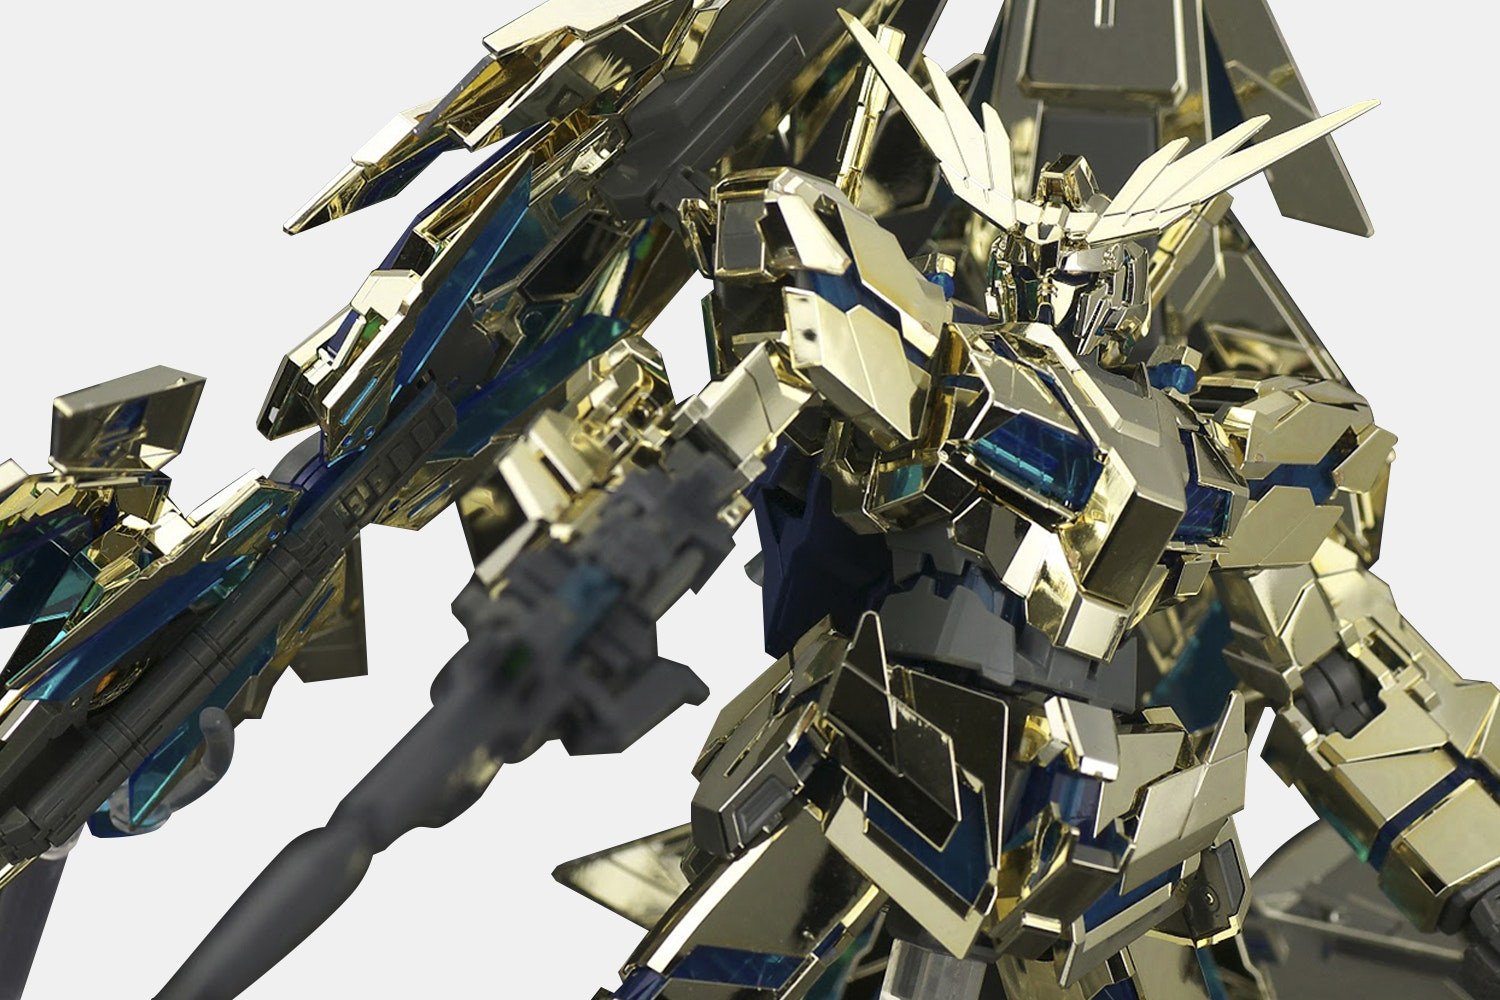 Gundam Unicorn 03 Phenex MG 1/100th Scale